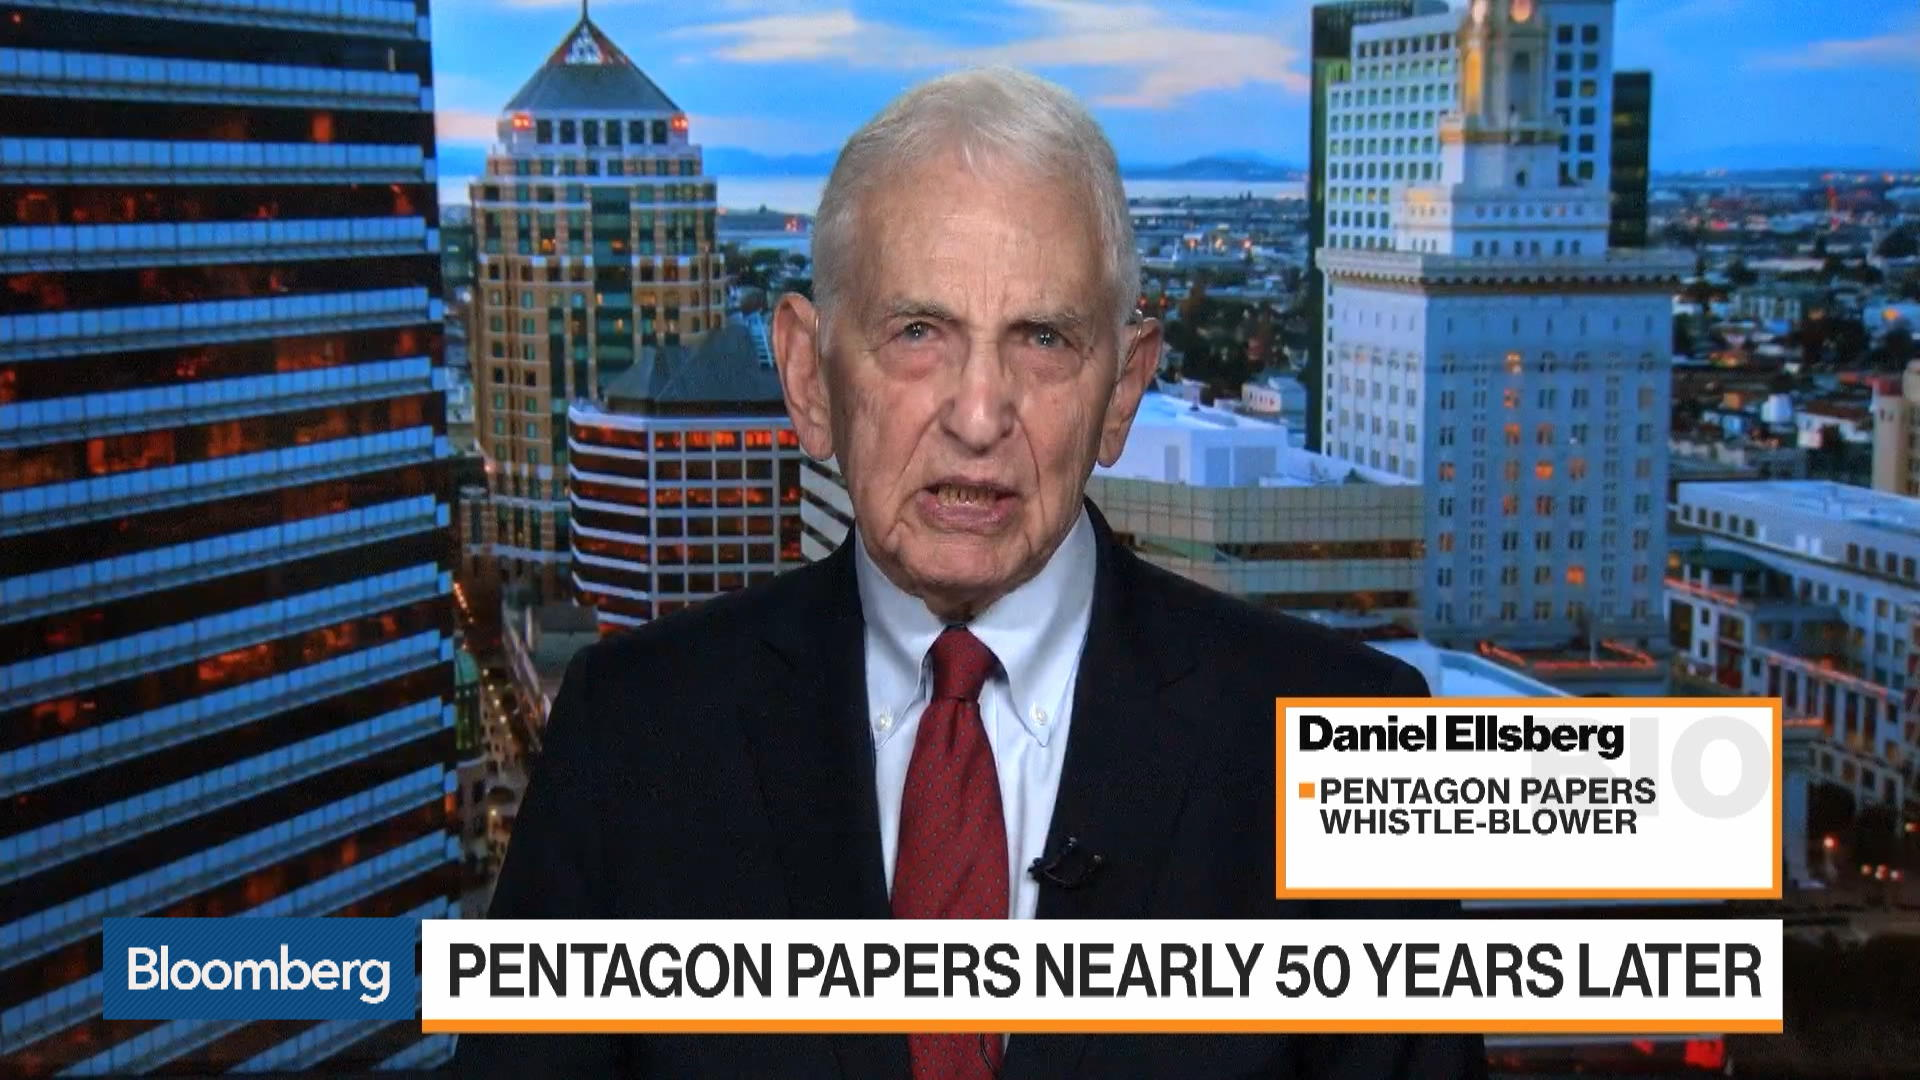 Daniel Ellsberg Reflects on the Pentagon Papers Nearly 50 Years Later